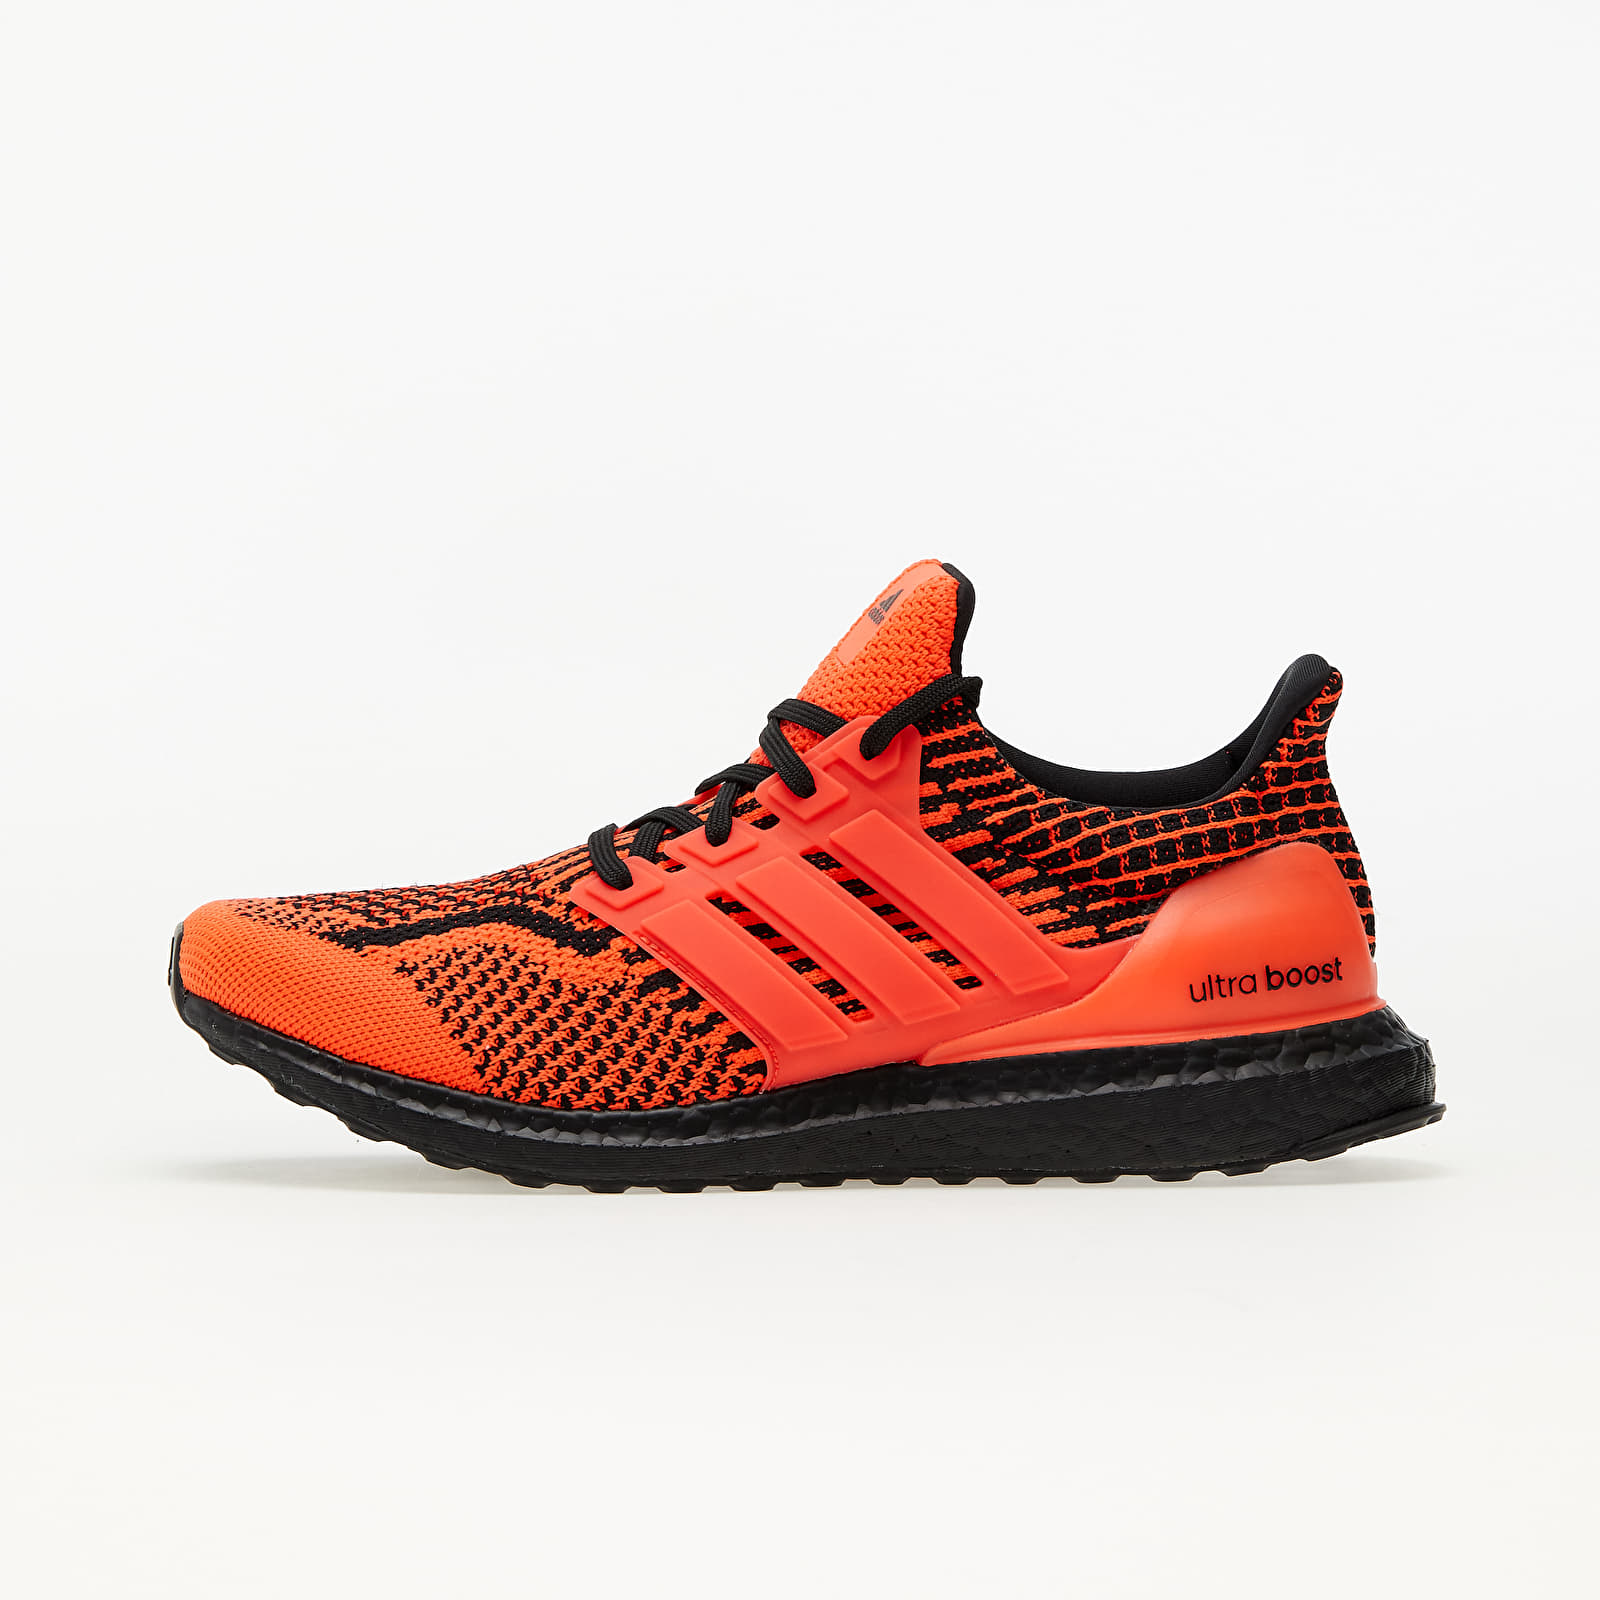 adidas UltraBOOST 5.0 DNA Solar Red/ Solar Red/ Core Black EUR 46 2/3